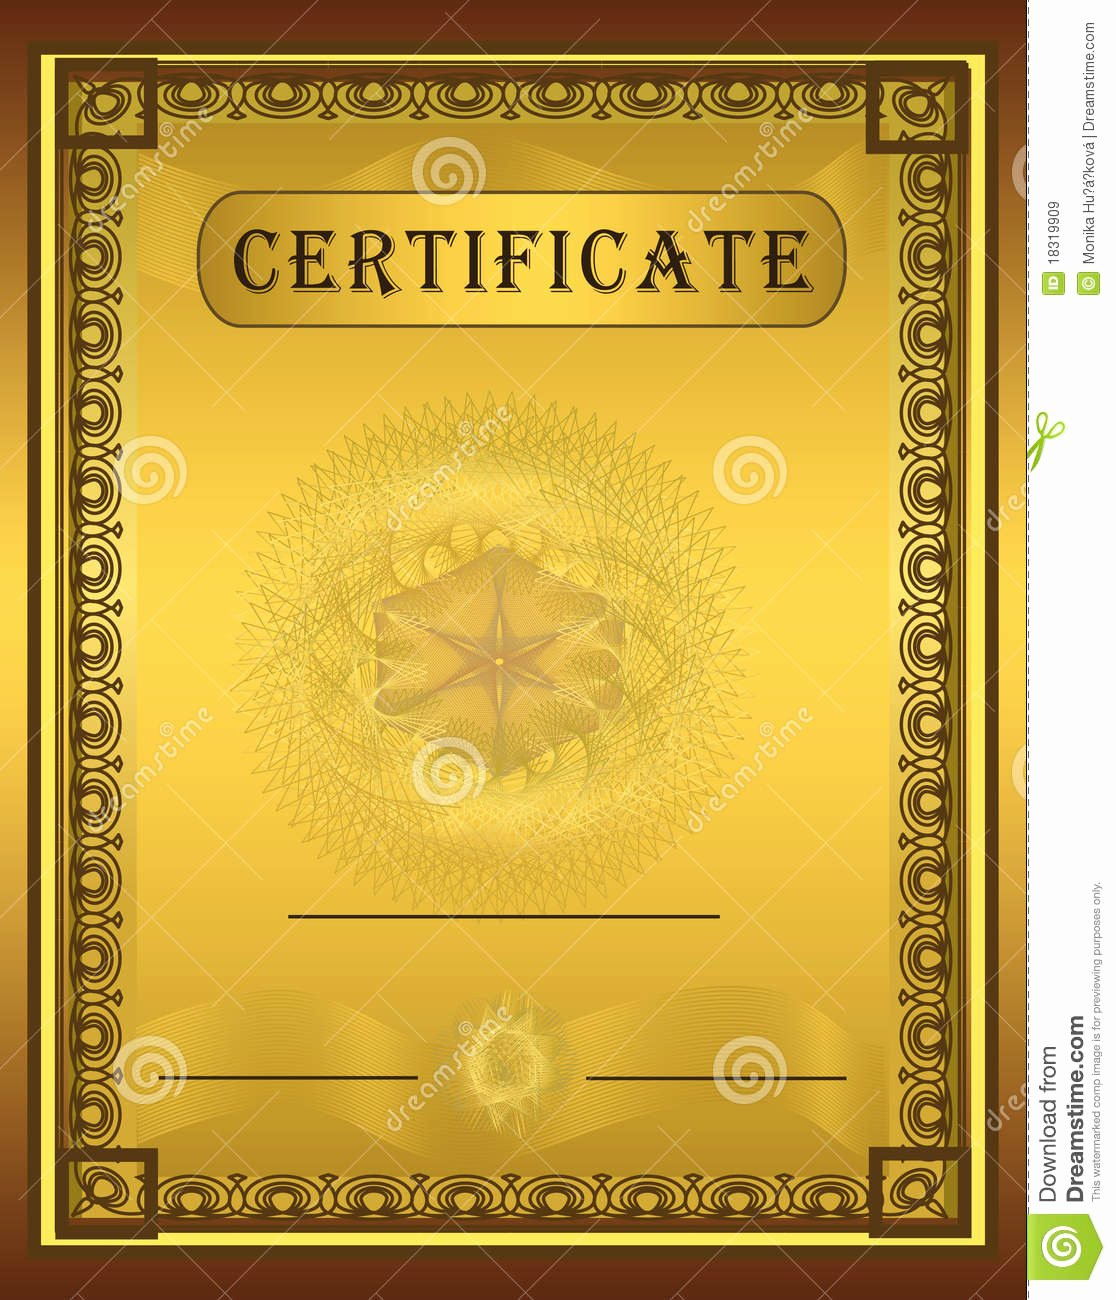 Plank Owner Certificate Template Beautiful Certificate Gold Frame Vertical Stock Vector